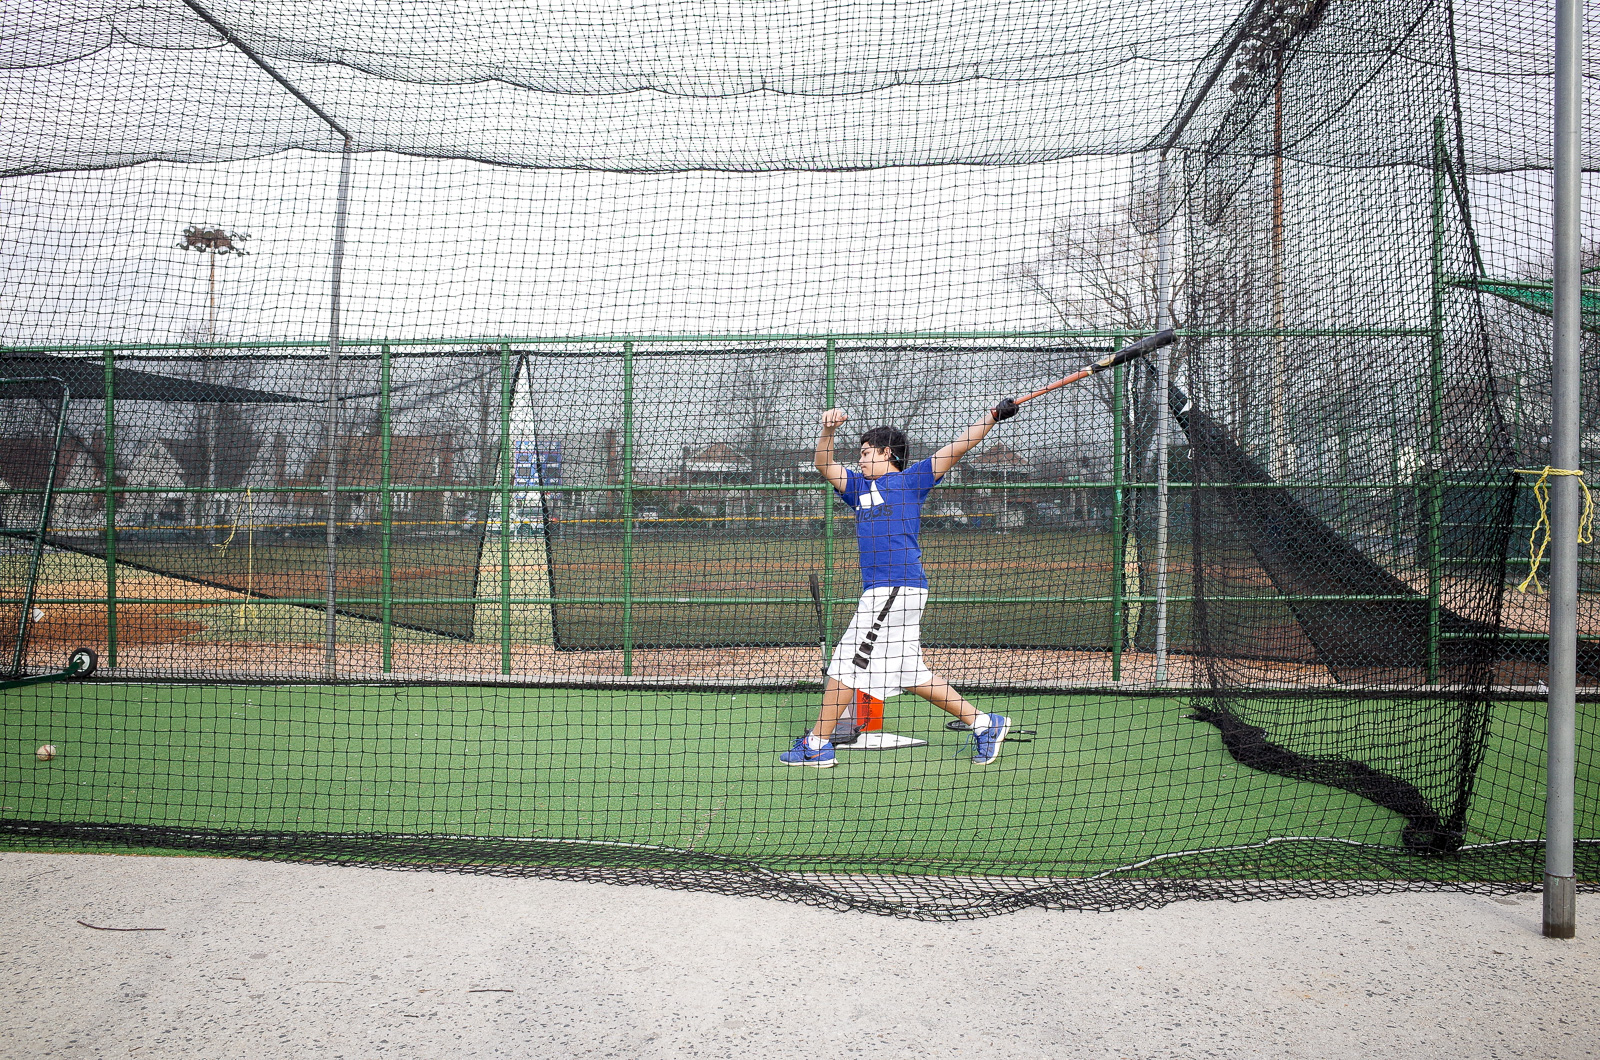 Hitting a Baseball inside the net